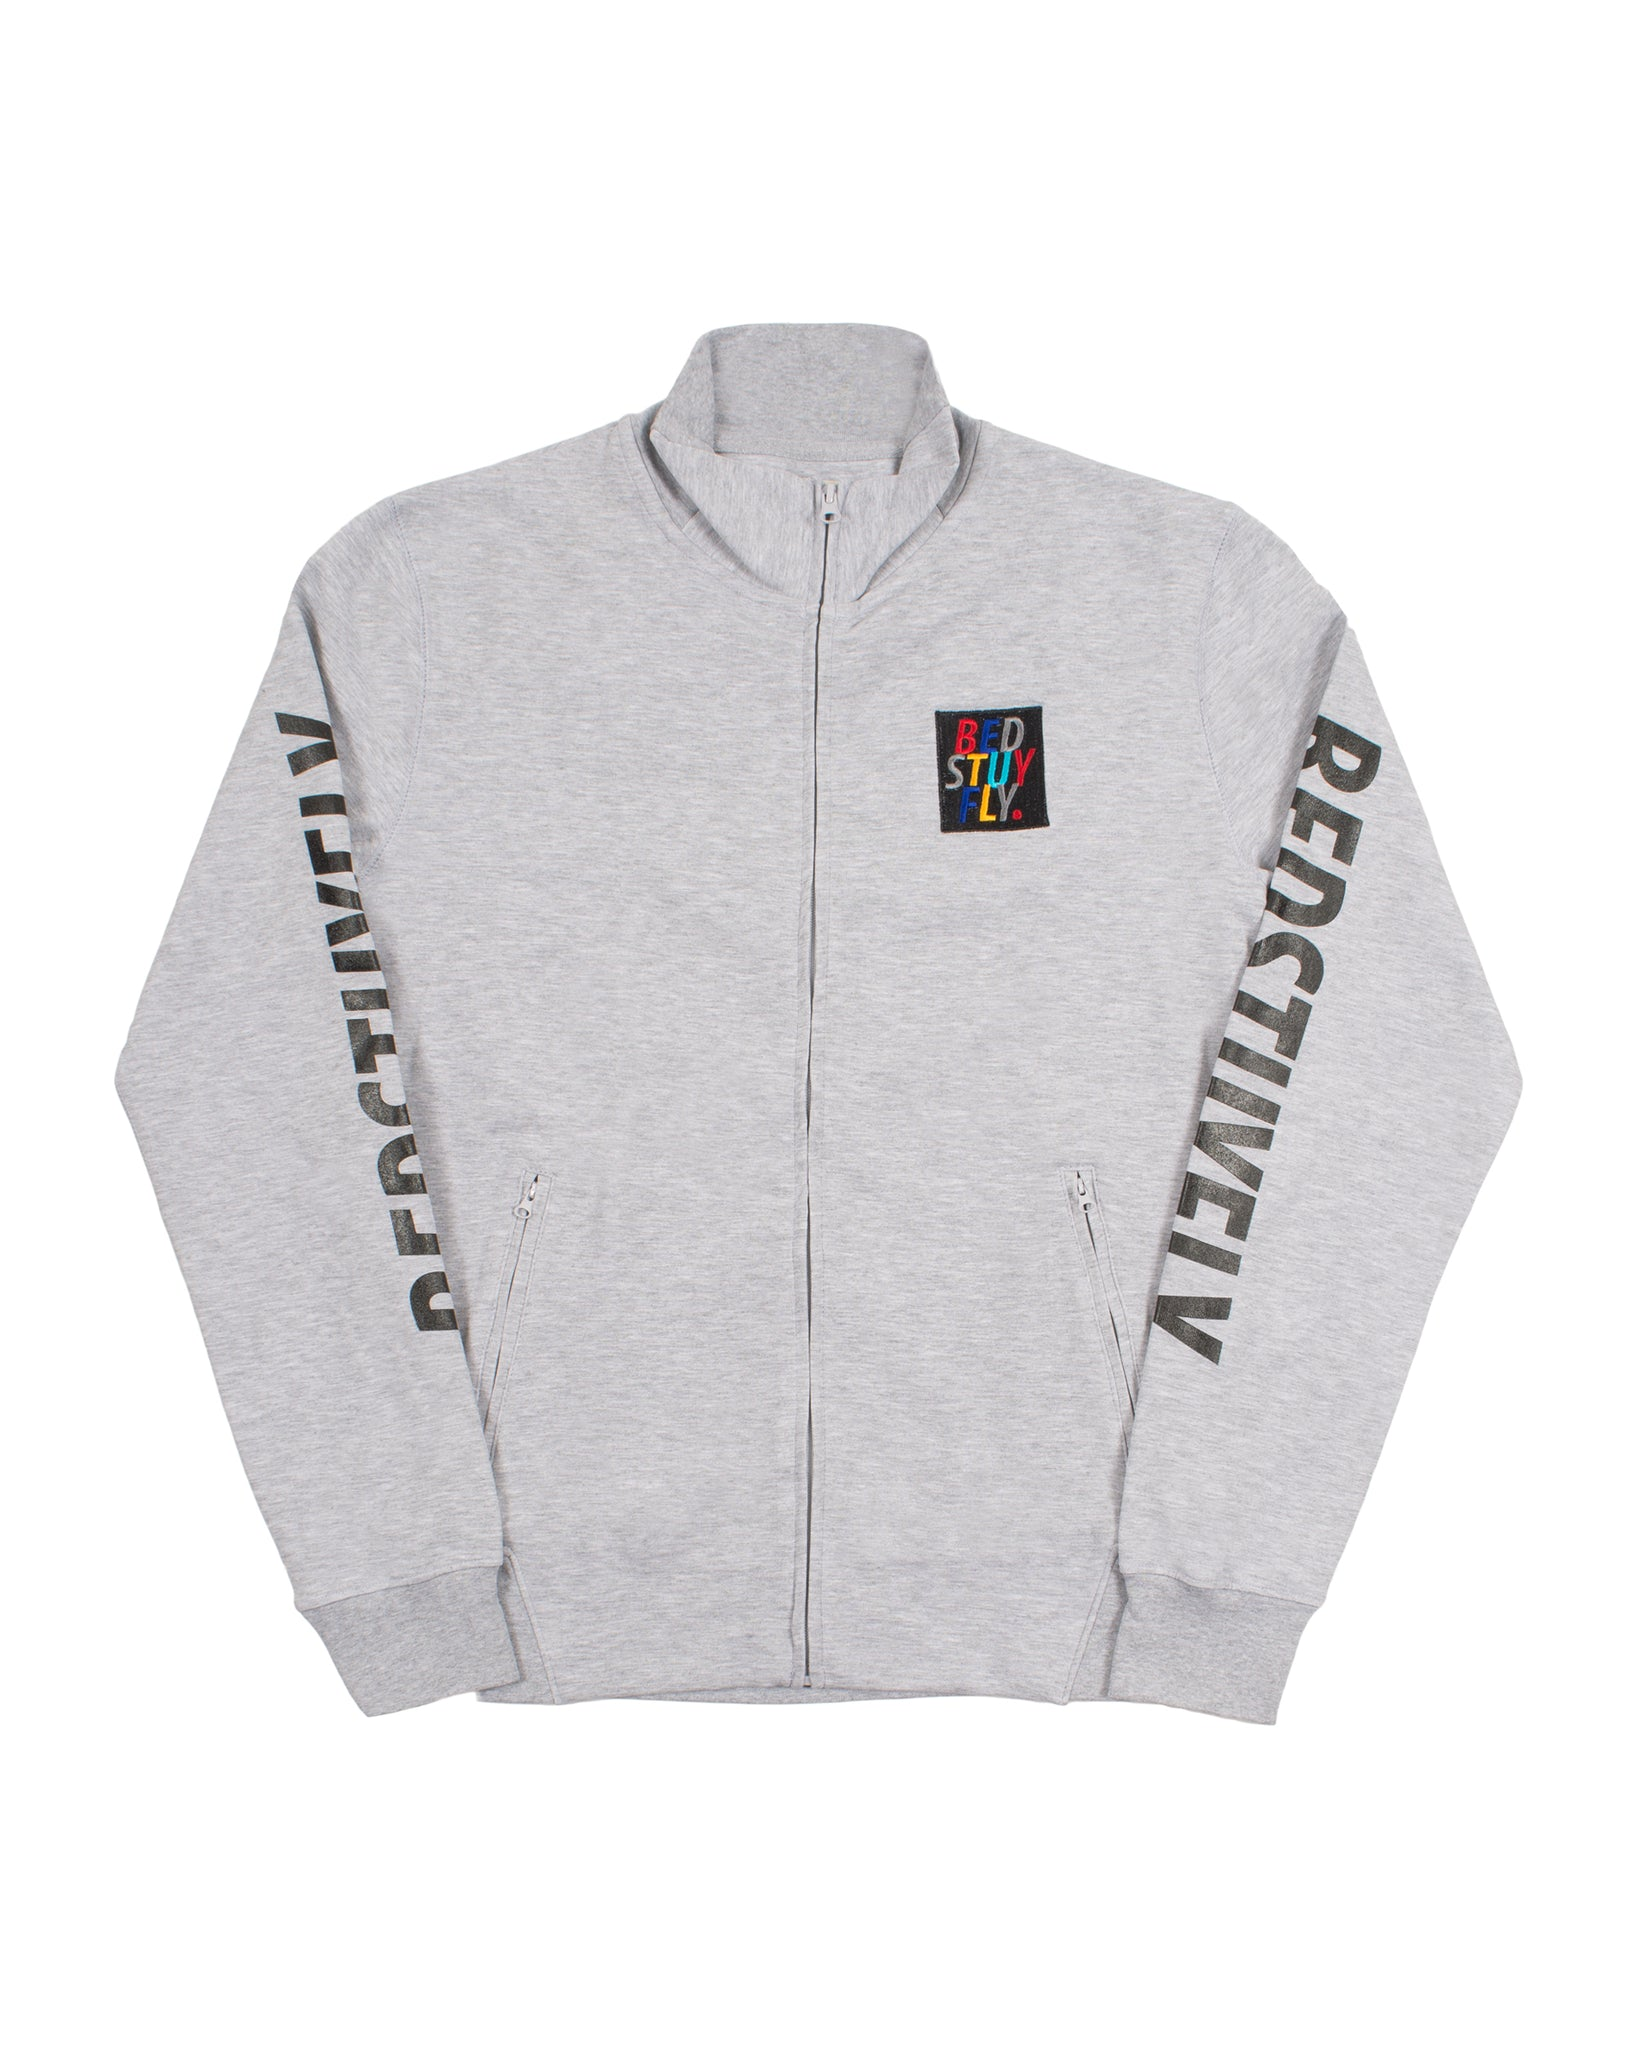 2.0 Performance Tech Fleece Jacket (Gray)